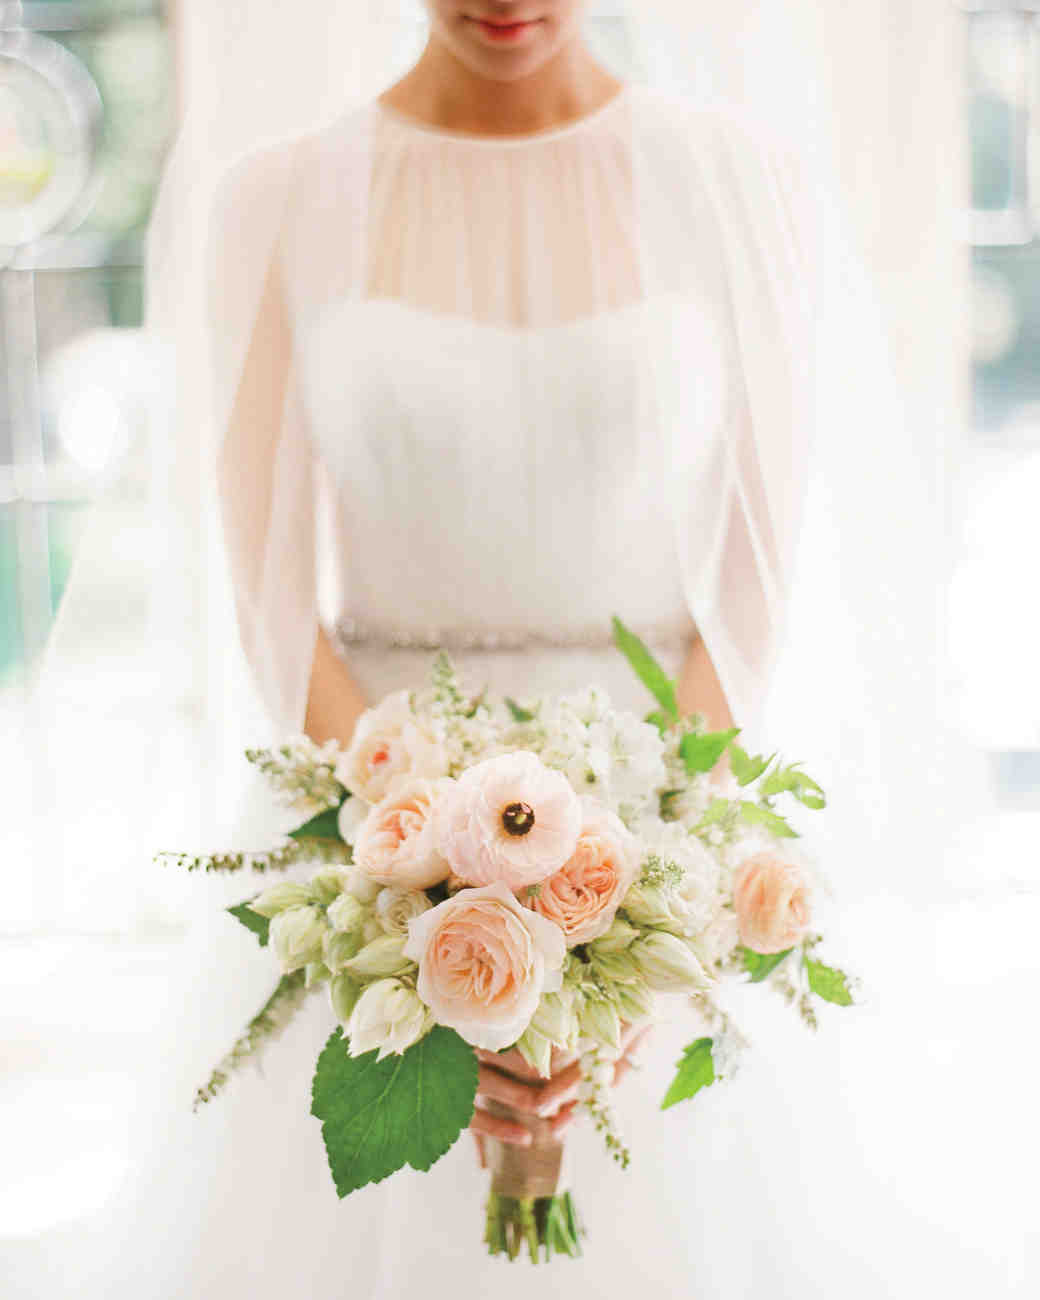 bride-bouquet-2013-08-31-bomibilly-0114-mwds110832.jpg